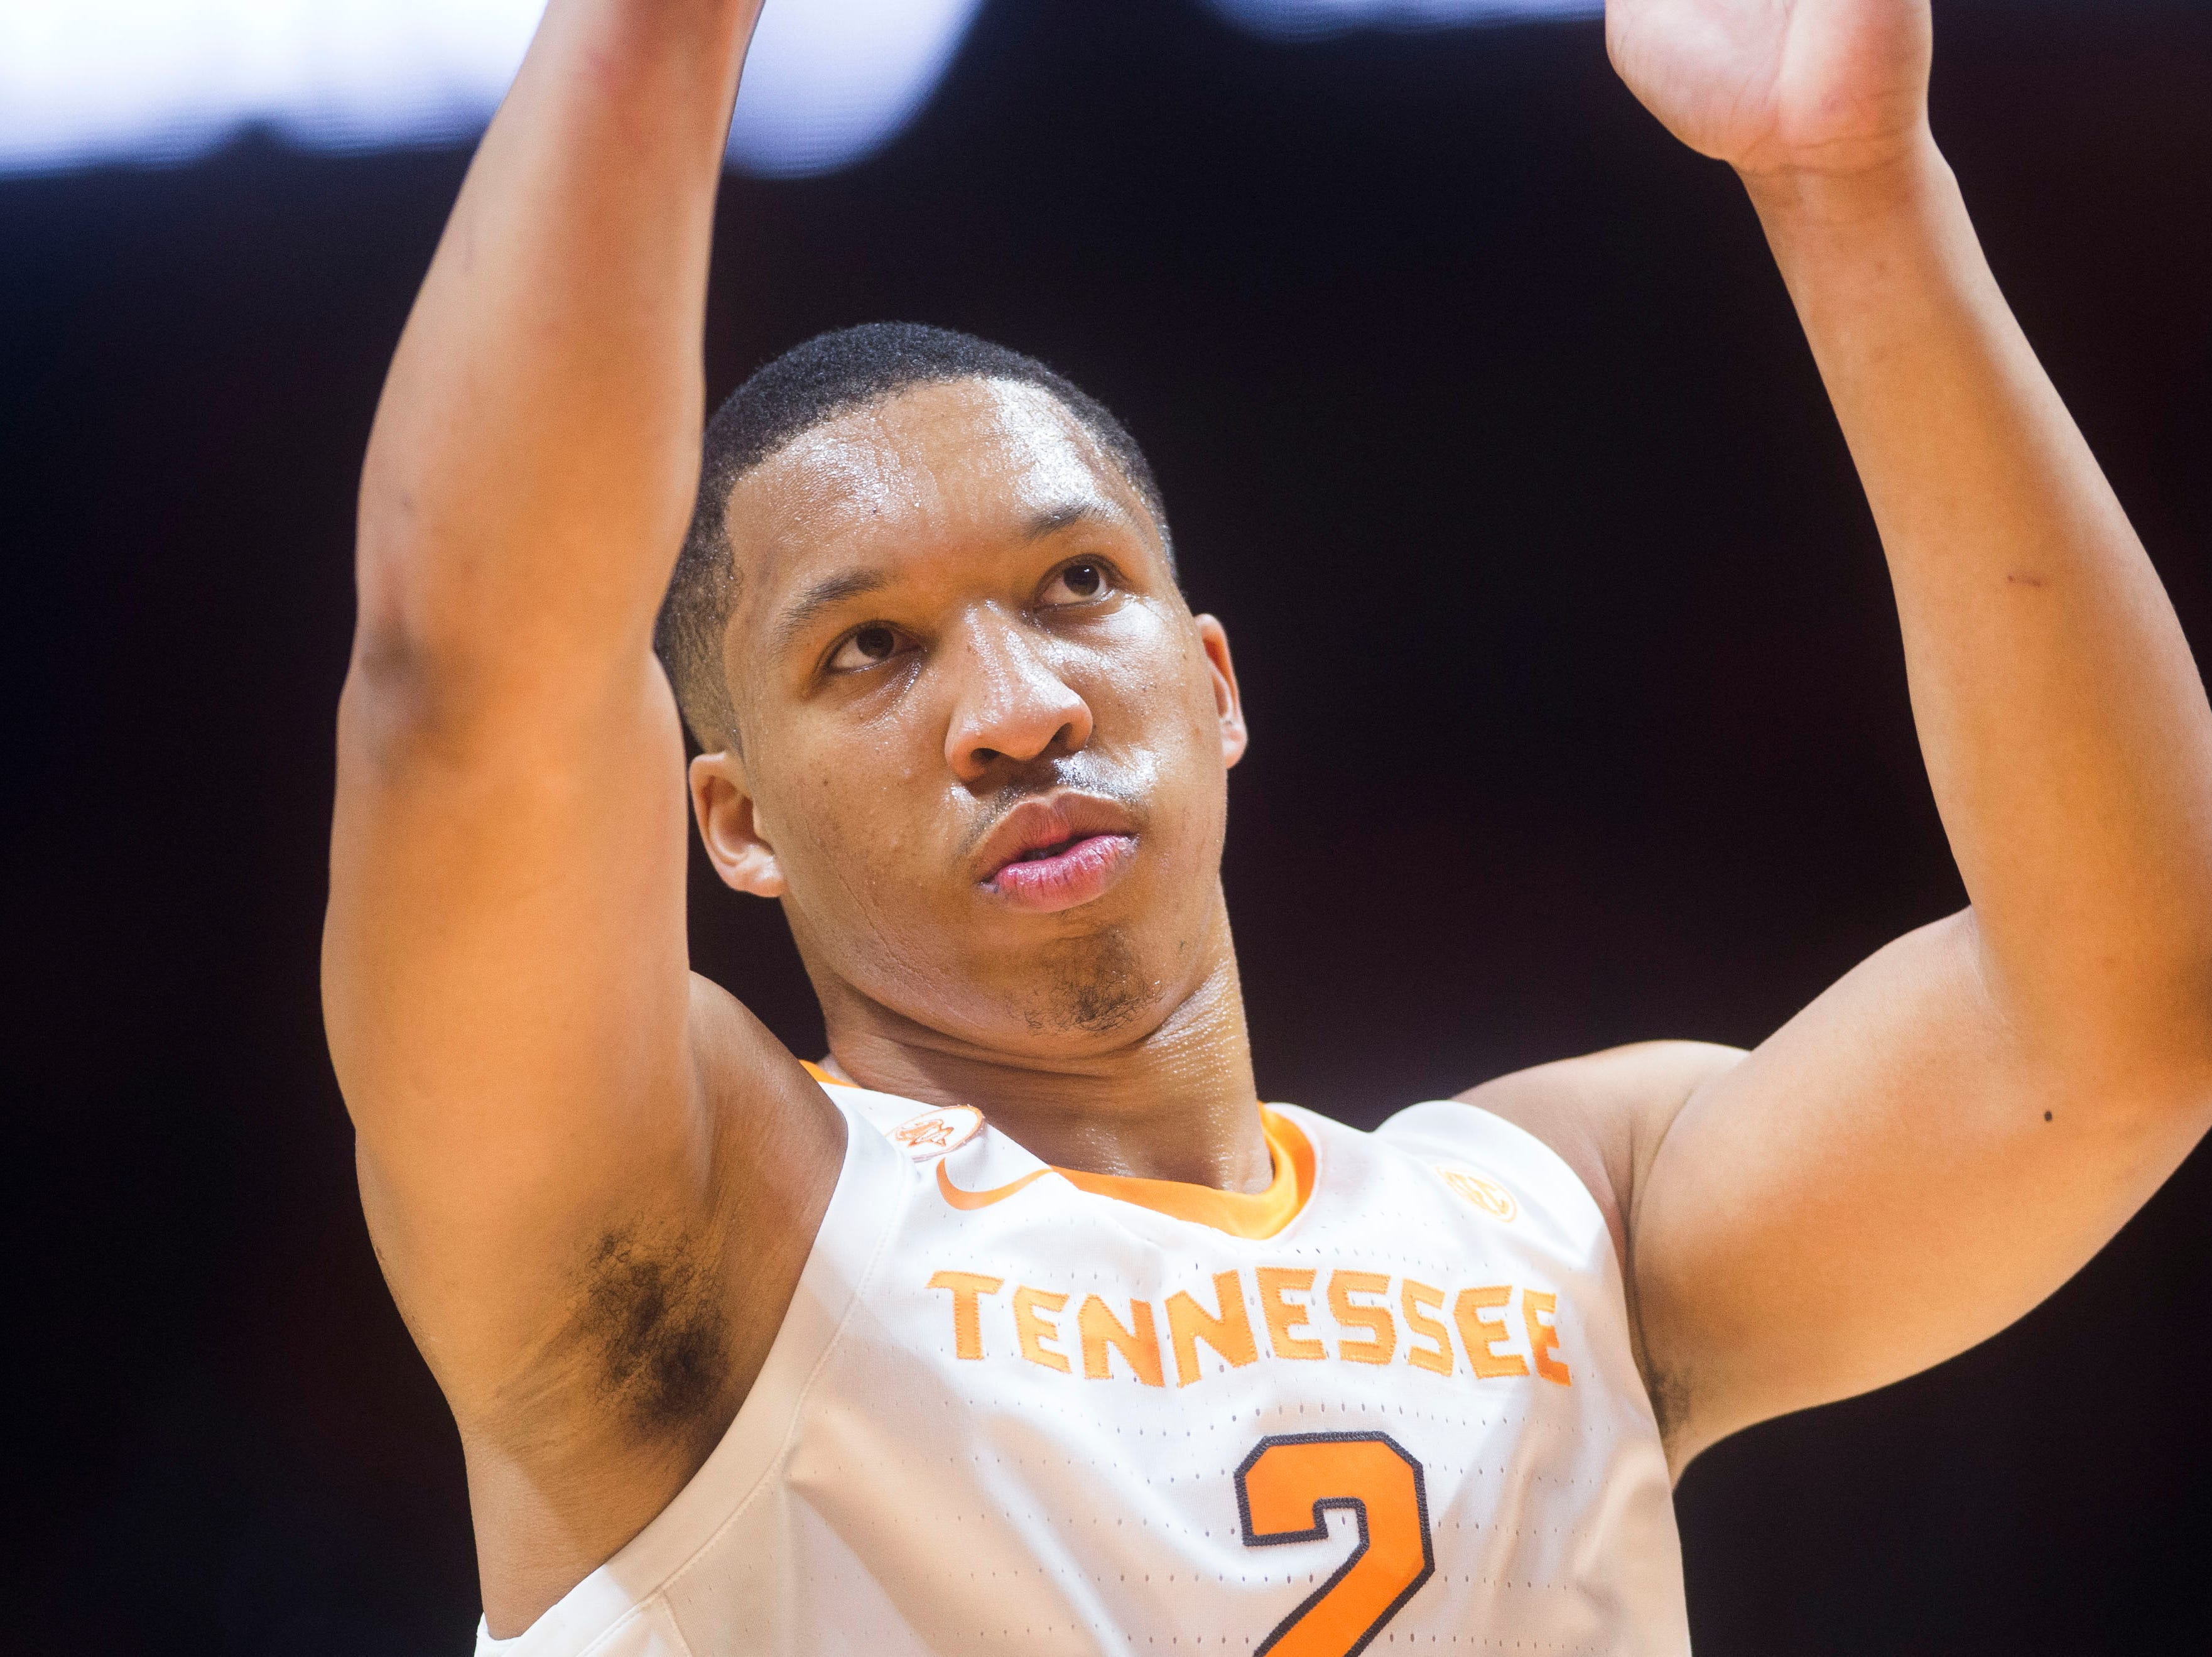 Tennessee's Grant Williams takes a foul shot during a game between Tennessee and Louisiana in Thompson-Boling Arena Friday, Nov. 9, 2018.